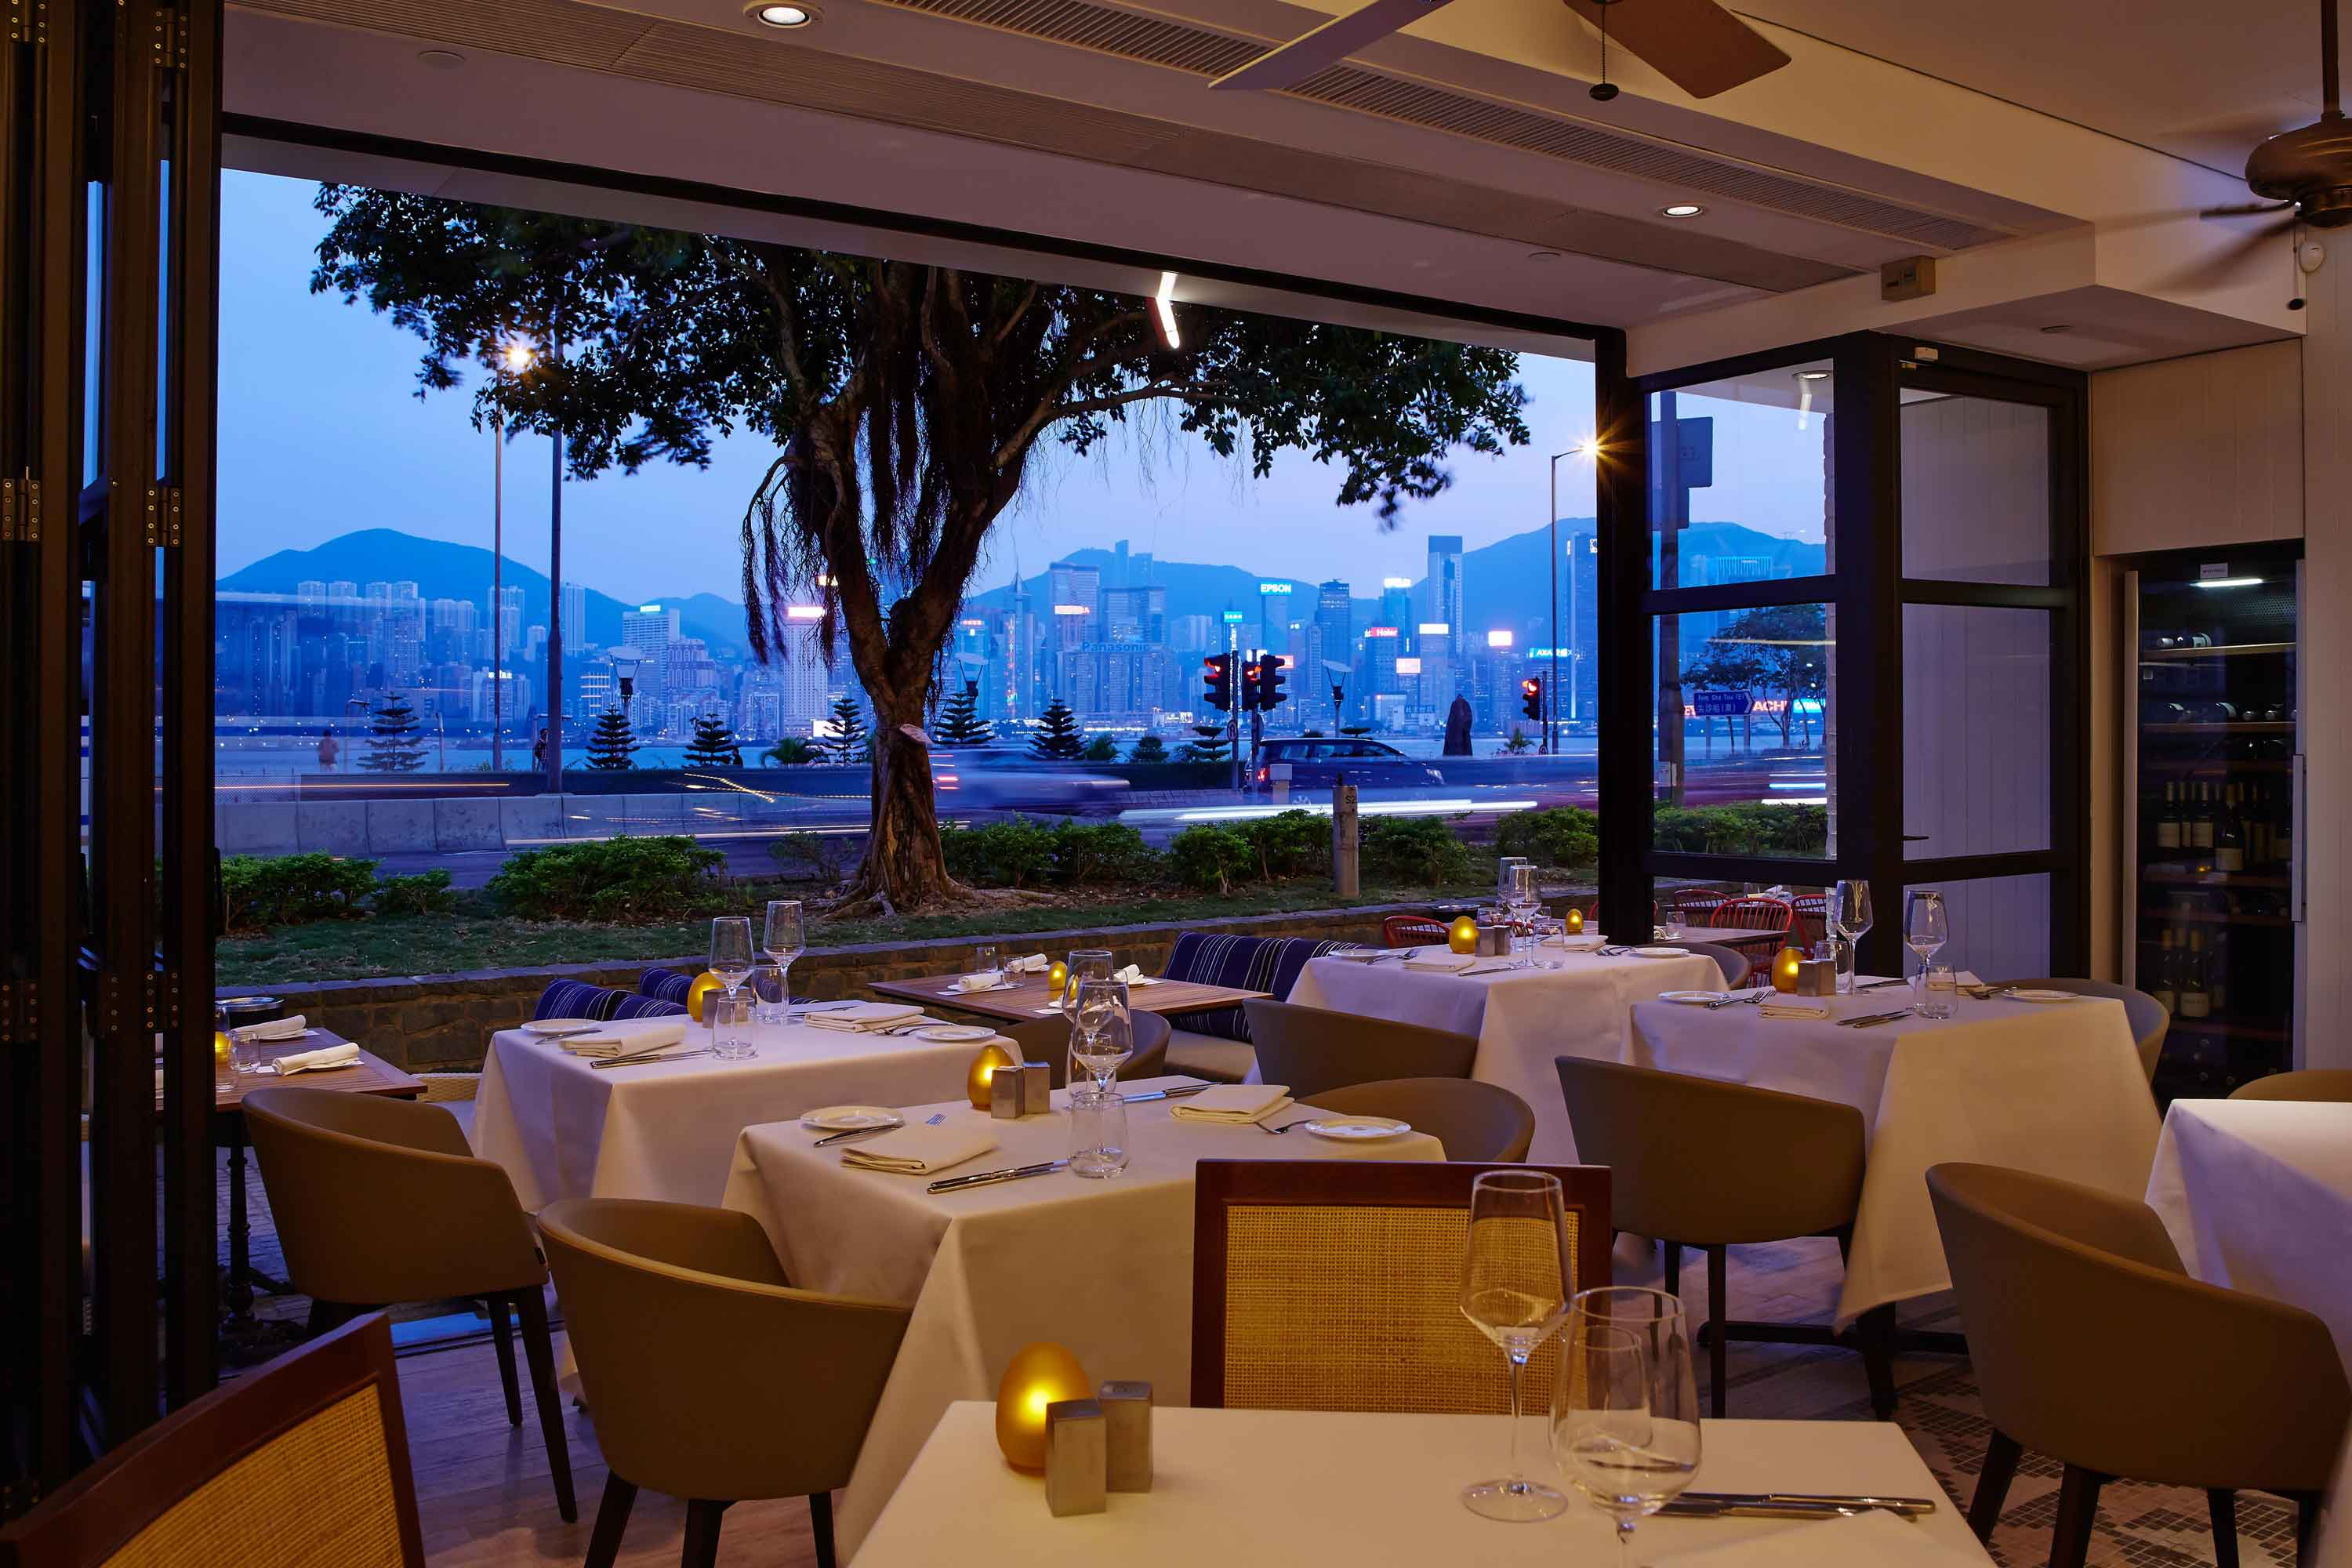 Spasso - Diners can enjoy panorama harbour views with Hong Kong skyline